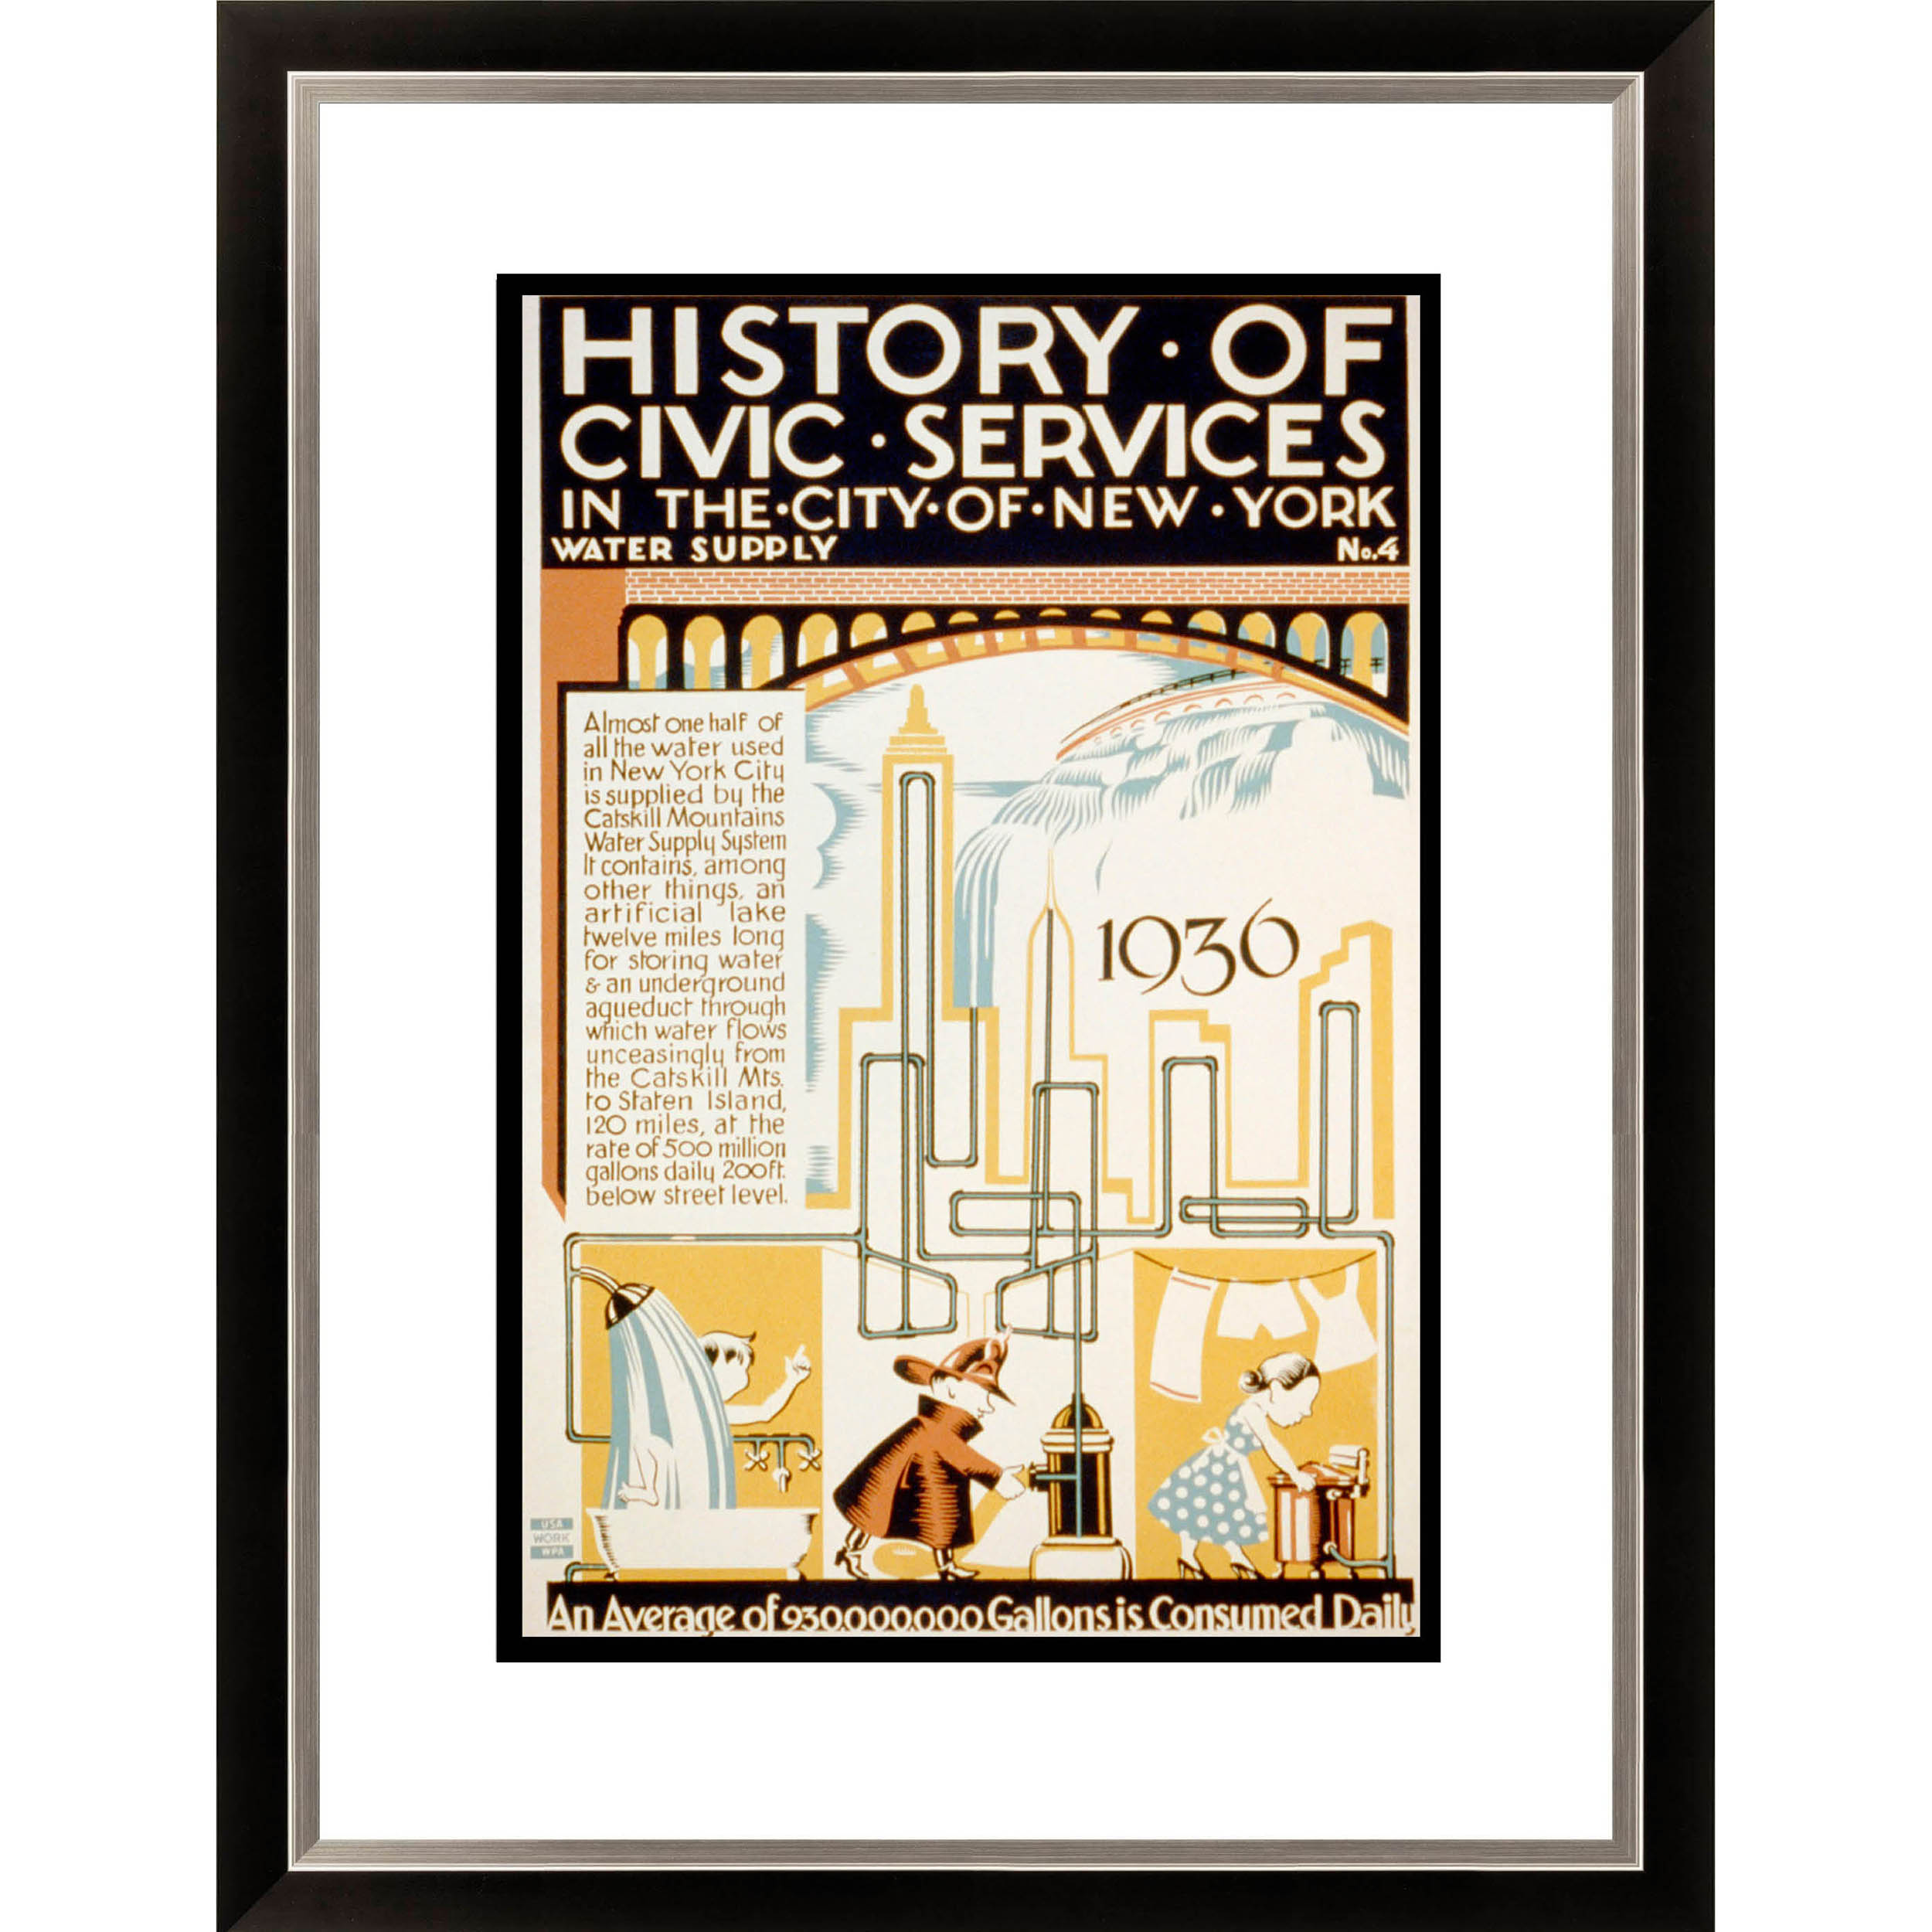 Gallery Direct History of Civic Services in the City of New York Framed Limited Edition Giclee Art